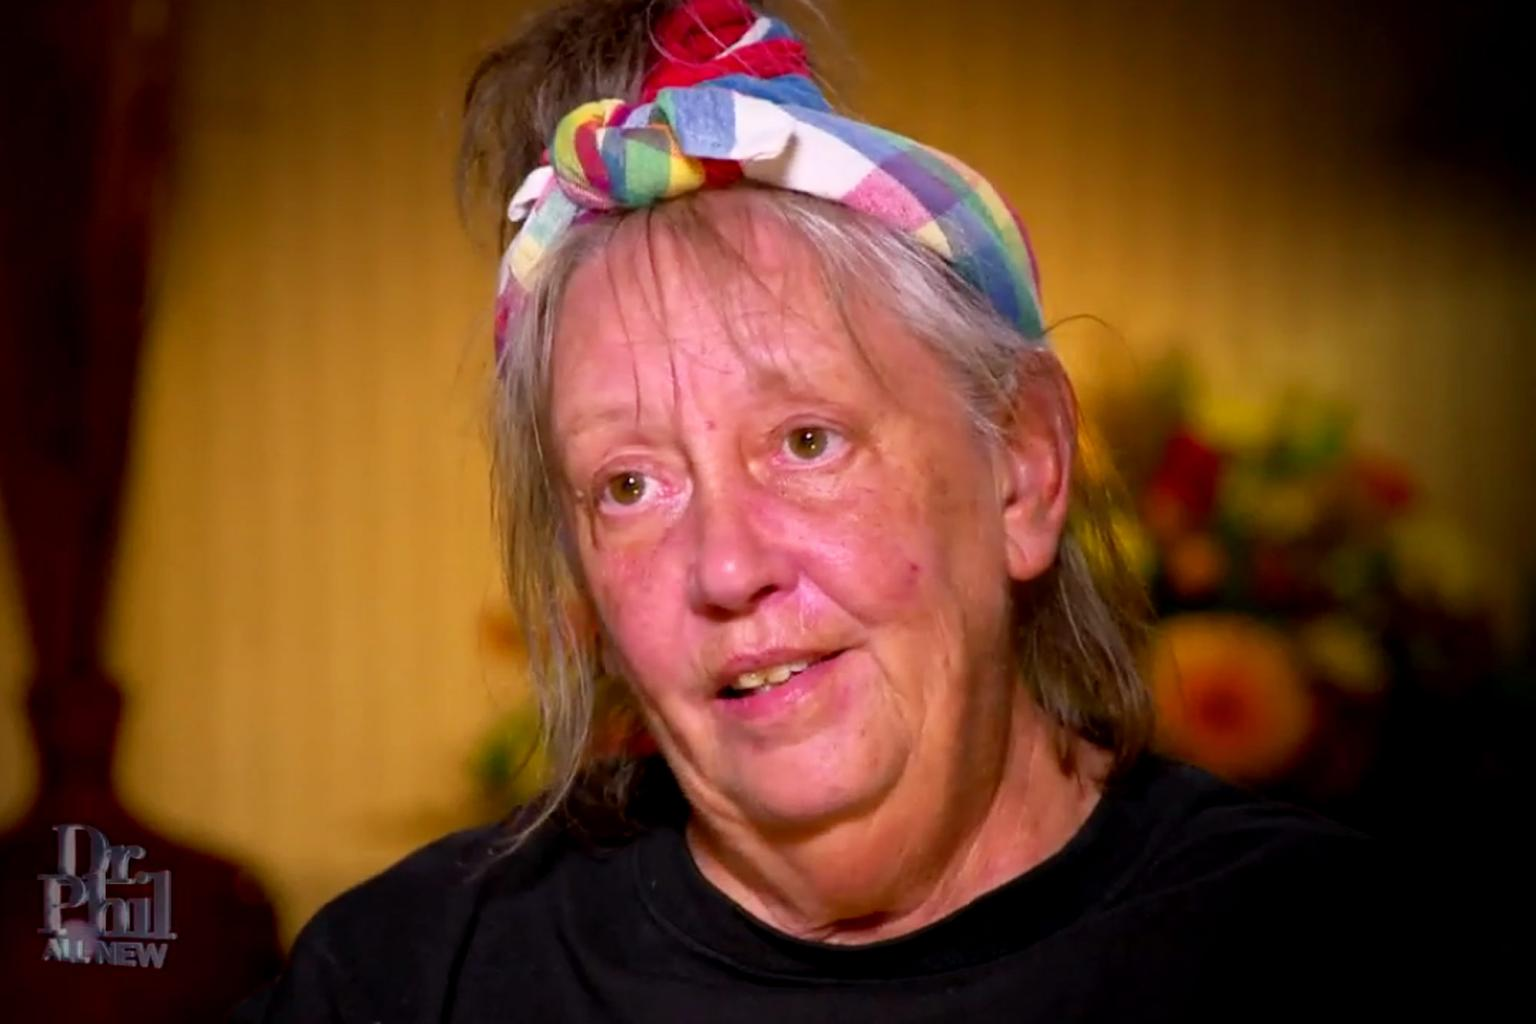 The Shining Star Shelley Duvall Reveals Mental Health Struggles on Dr. Phil:   'I Need Help